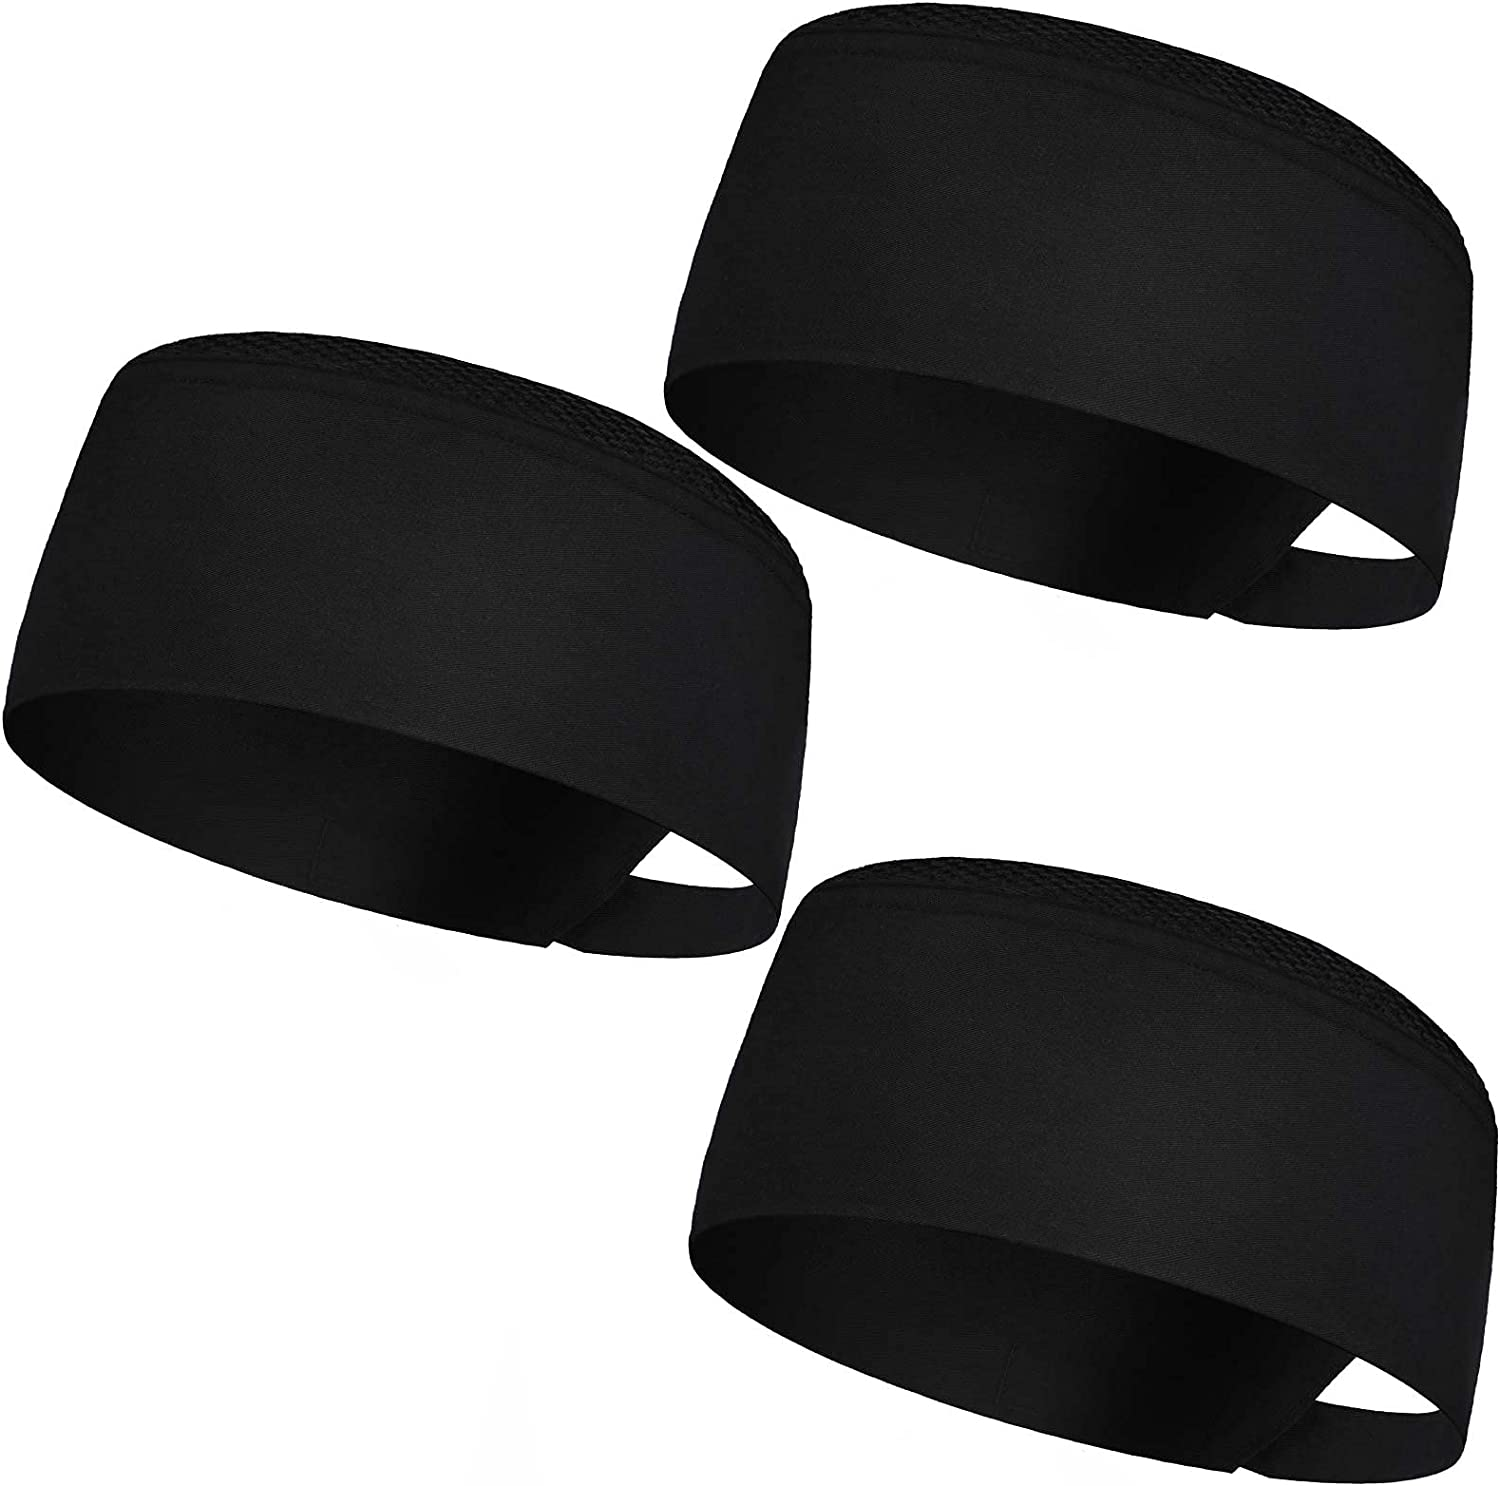 3 Pieces Unisex Chef Hats Kitchen Cooking Food Service Caps with Elastic for Adults Black